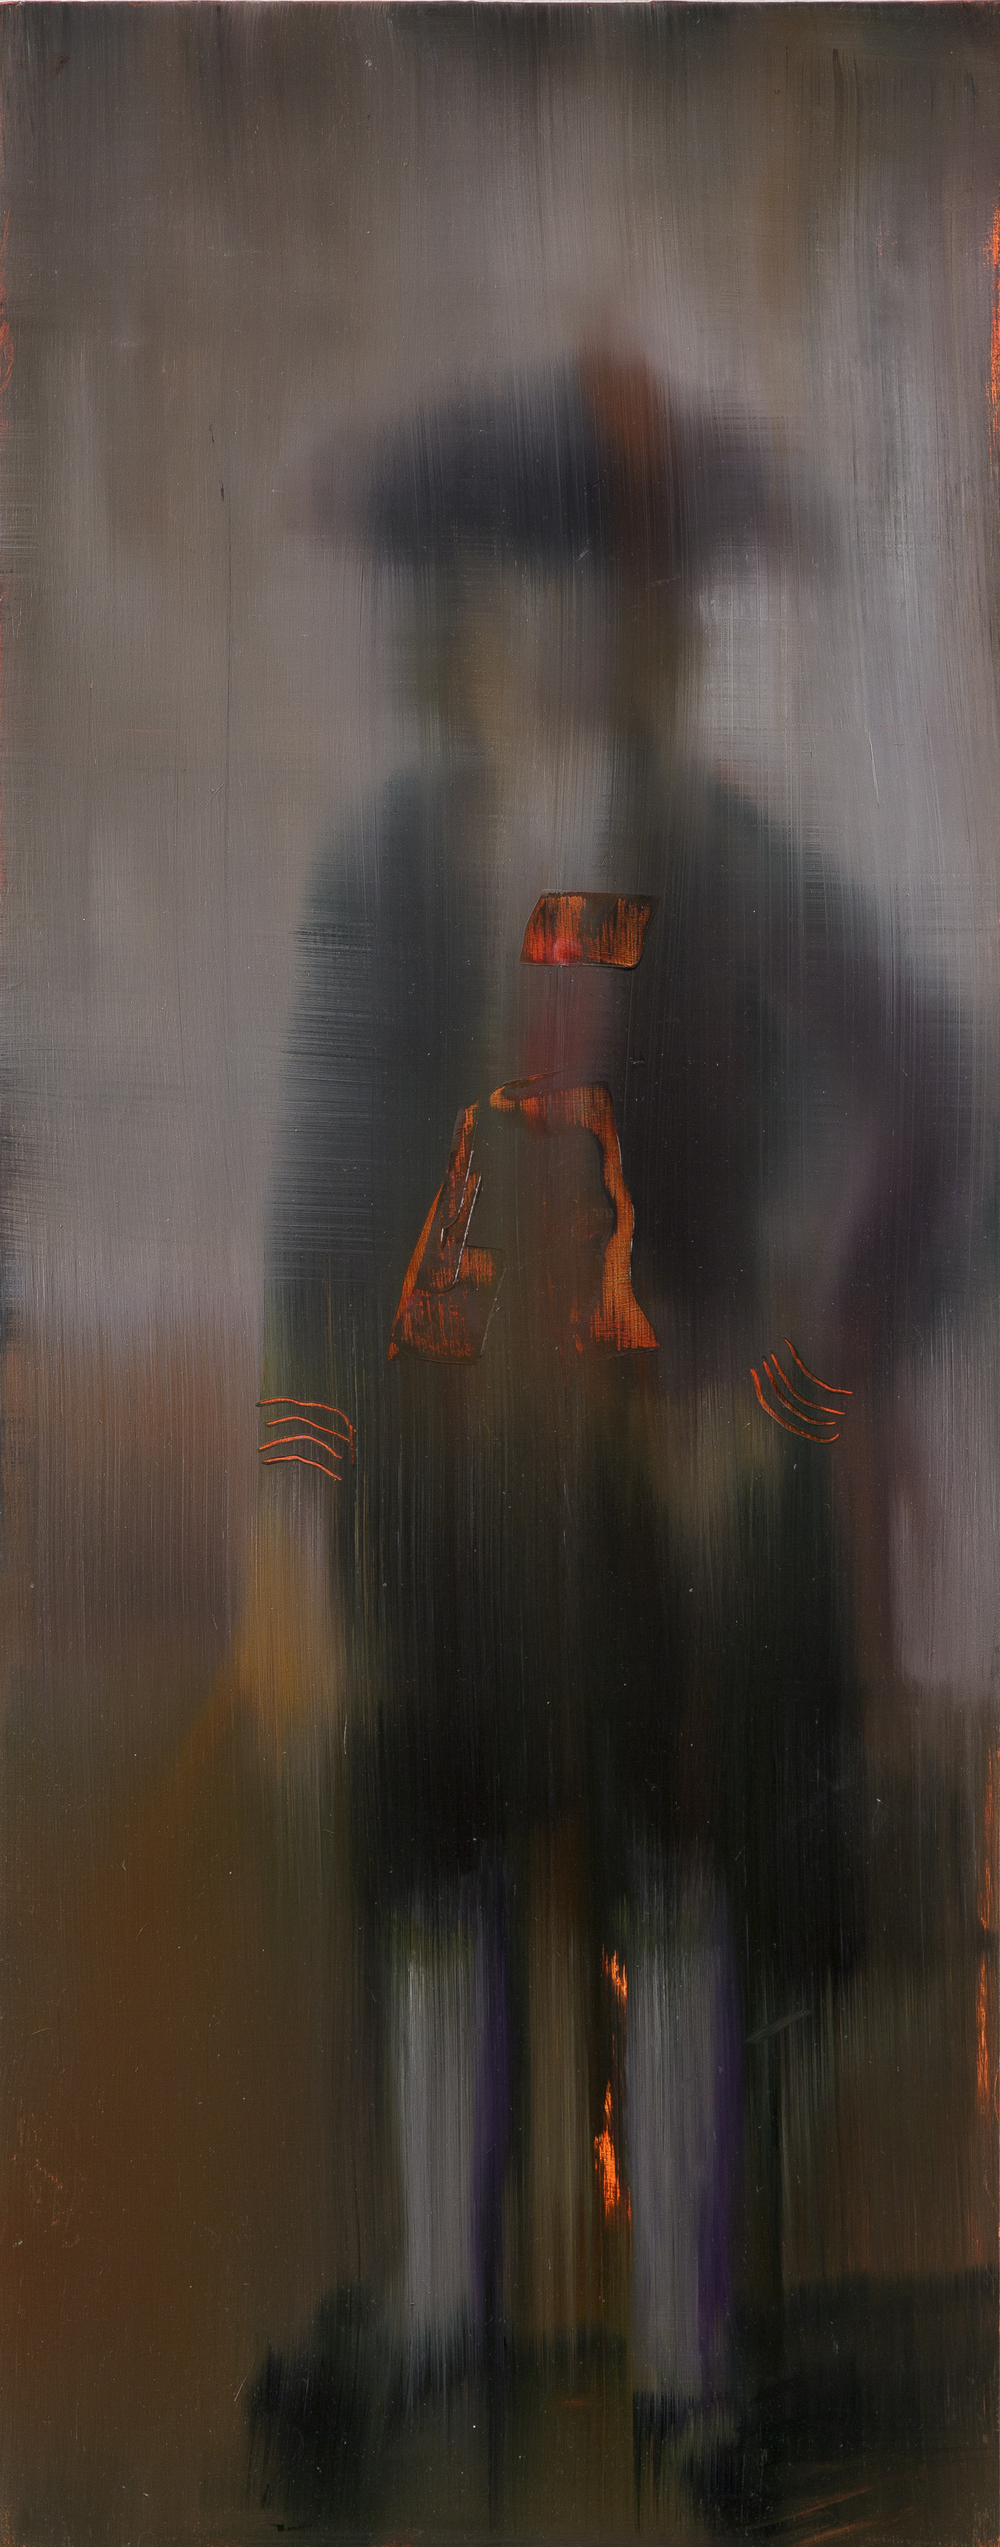 Manuel de Lapeña (after Goya), 2012